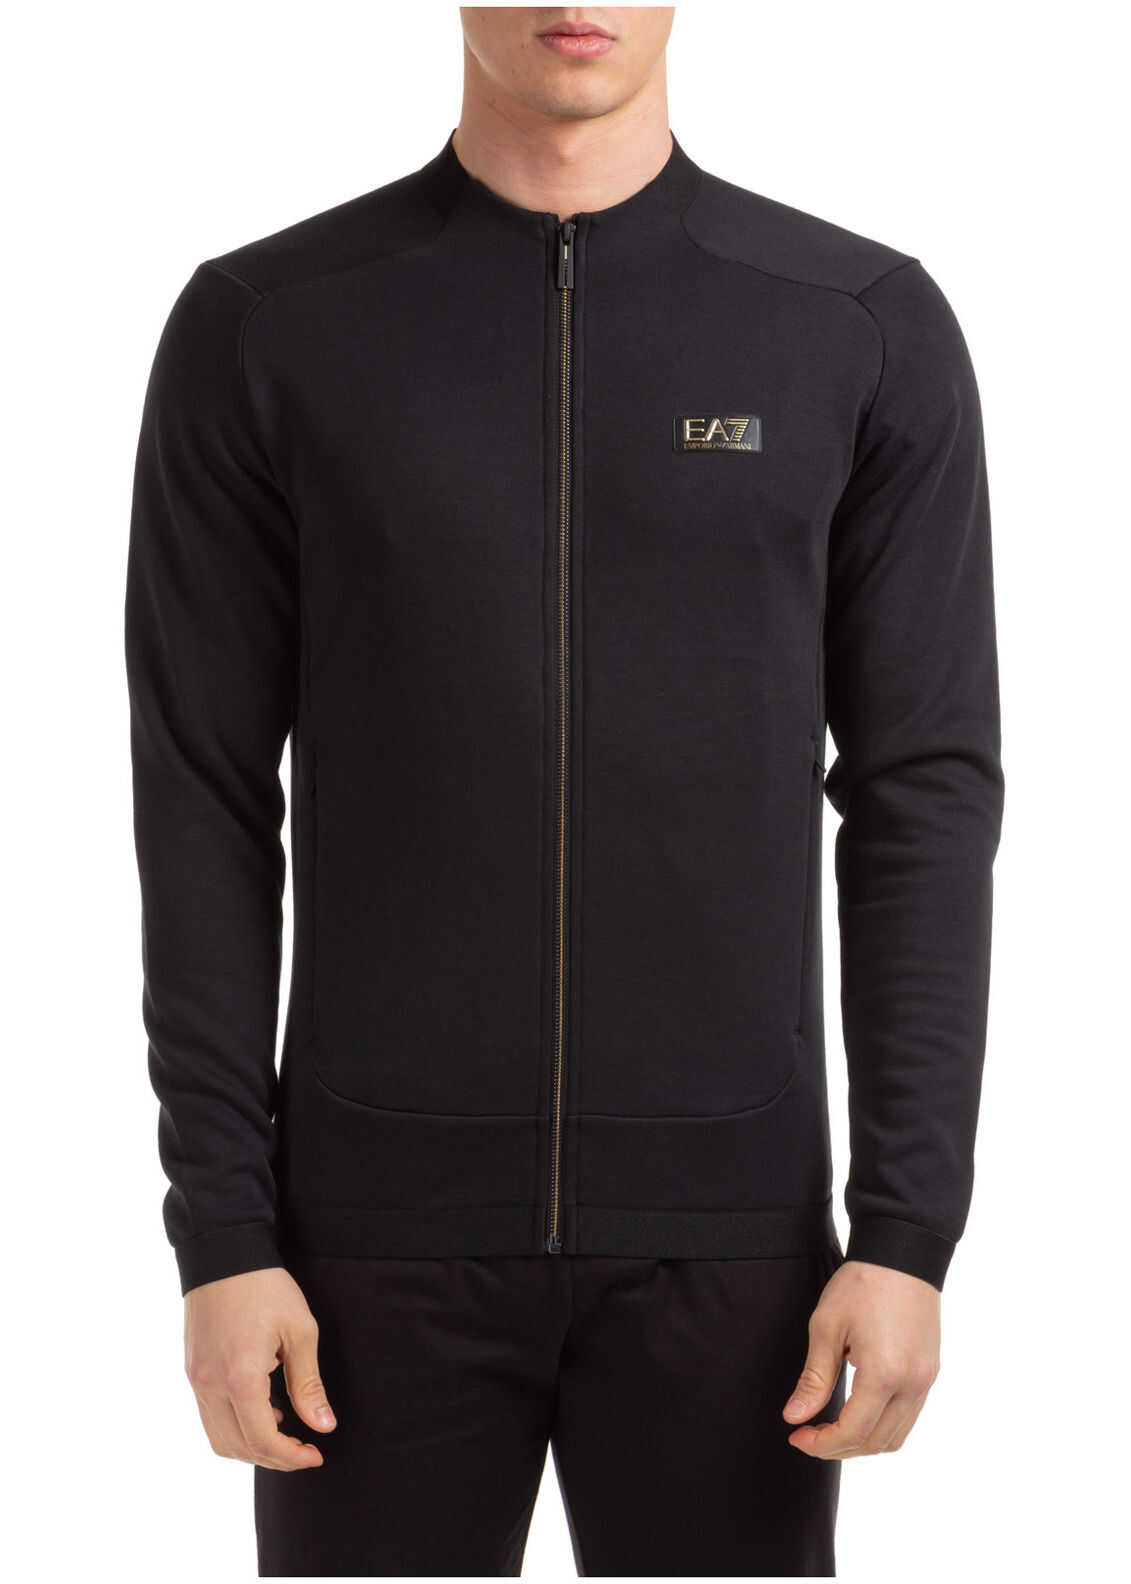 EA7 Zip Sweat Black